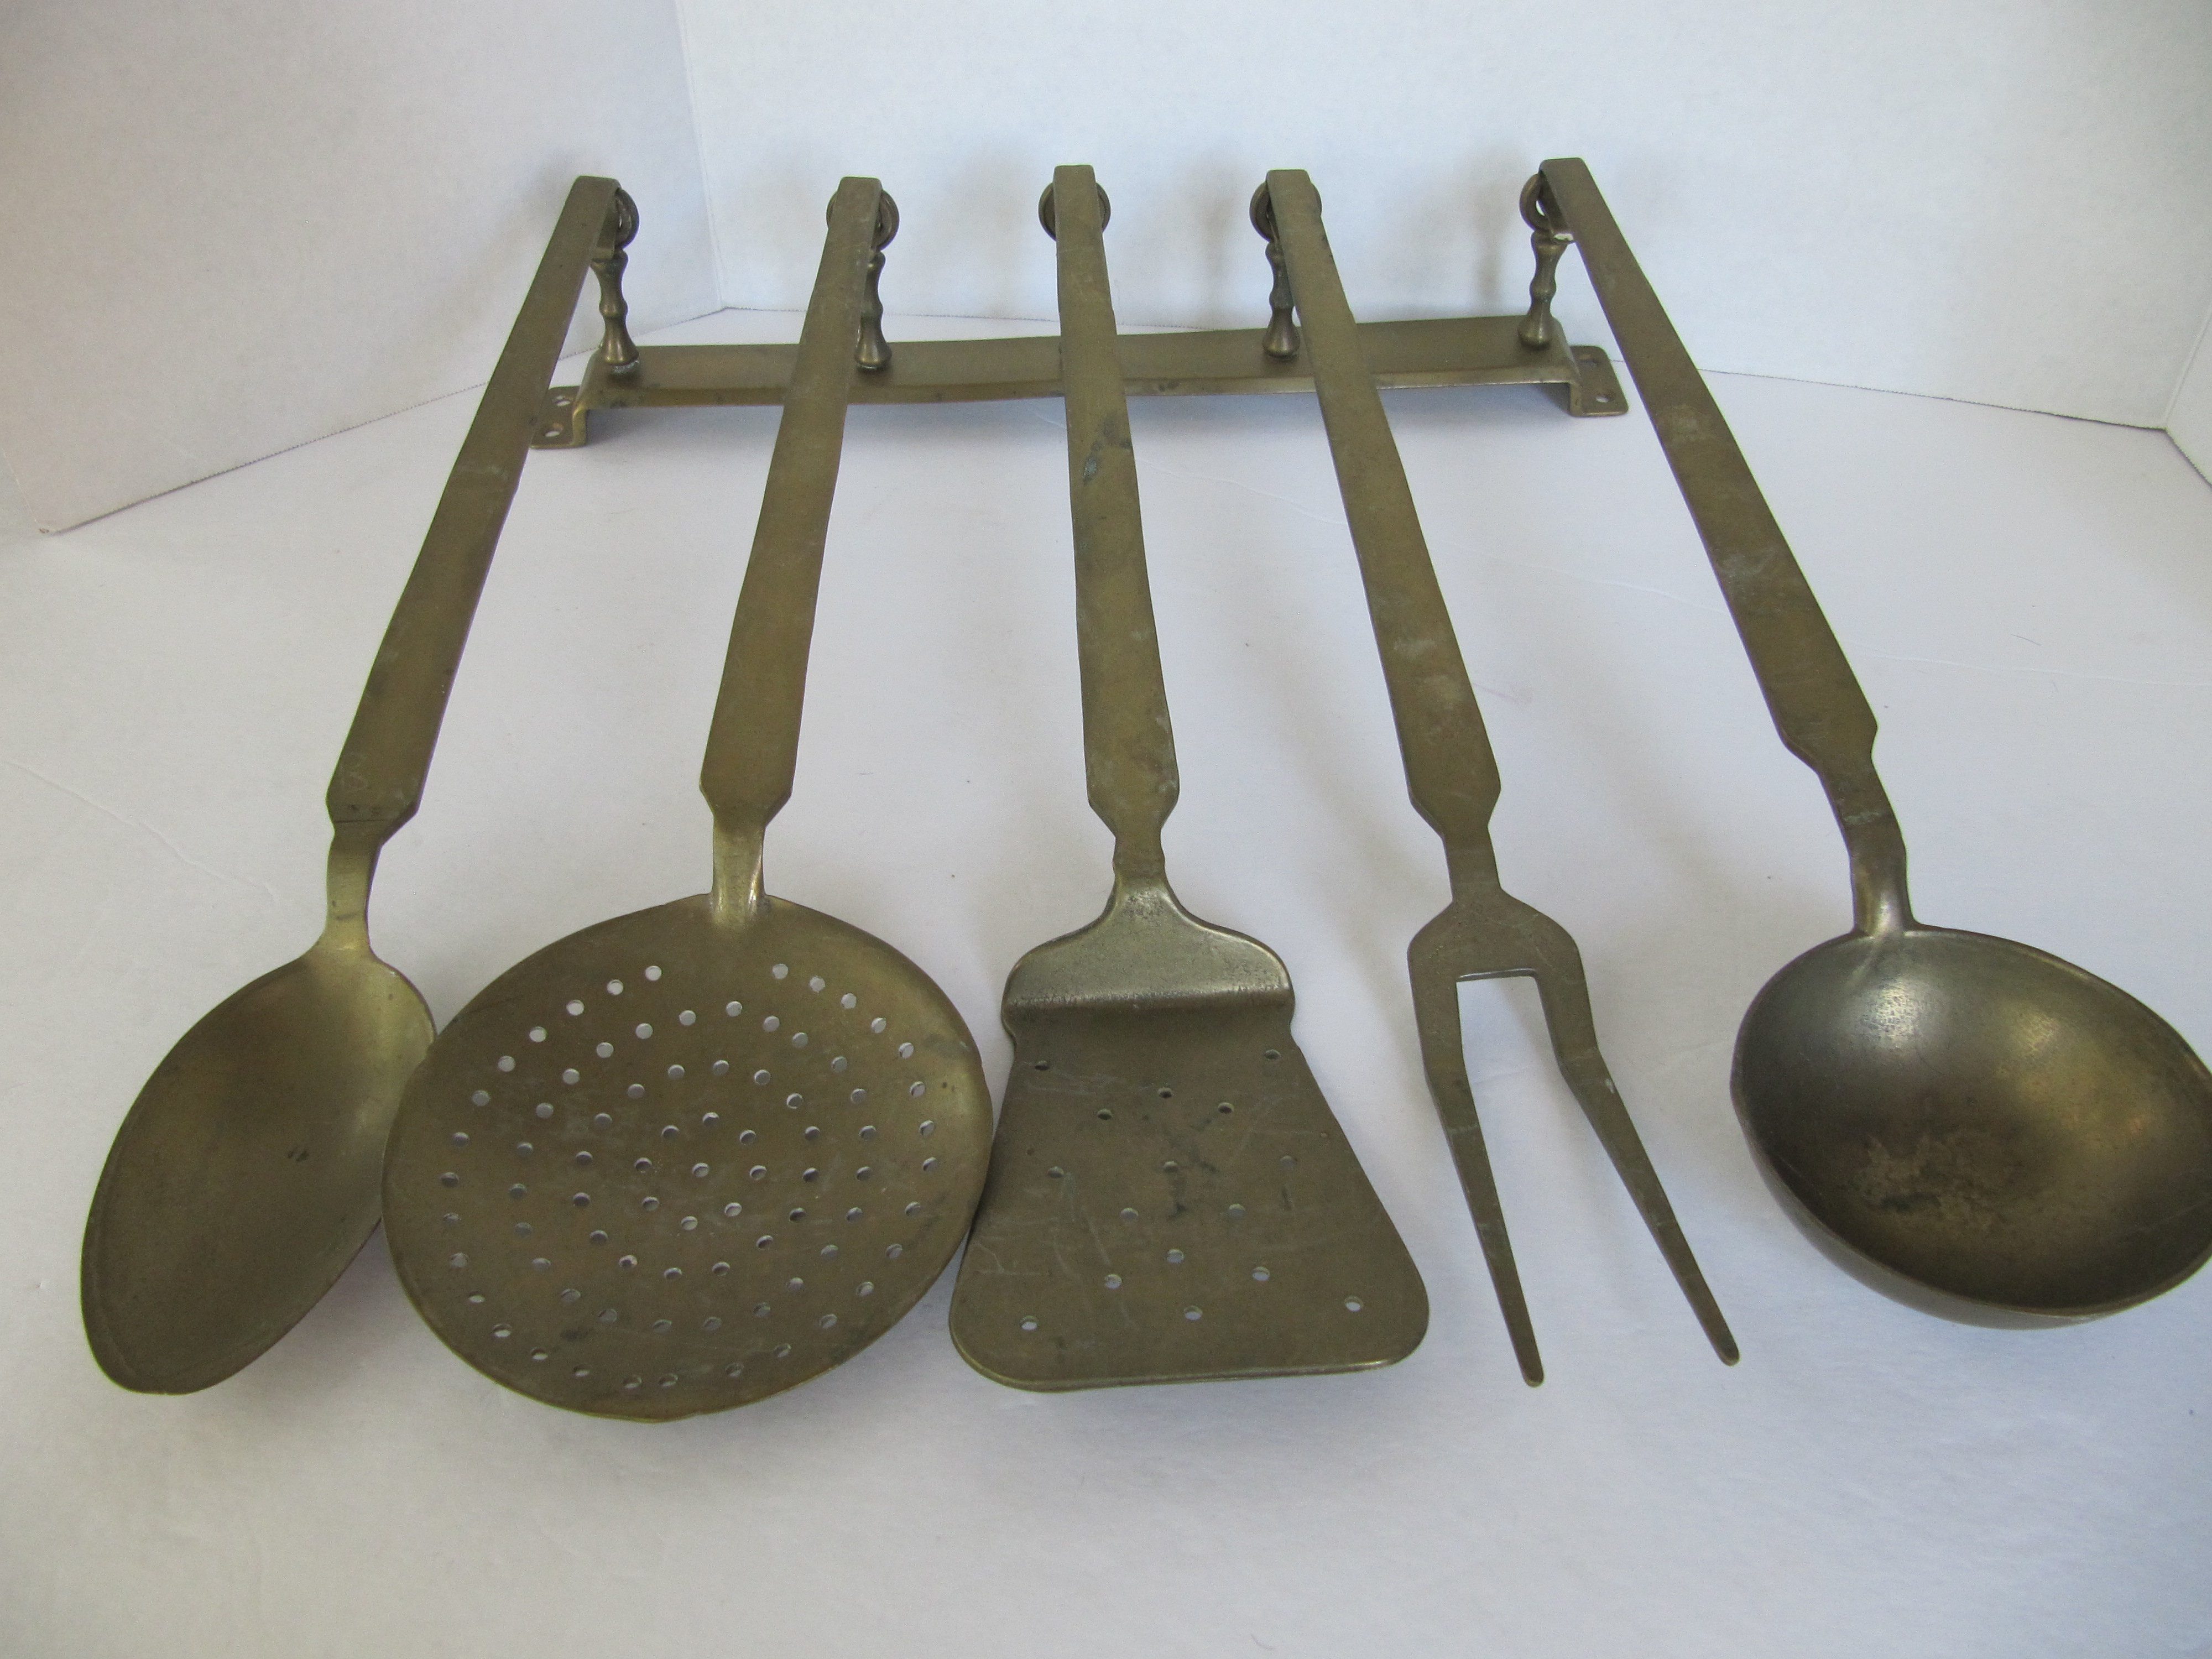 Vintage Hanging Brass Utensils   Set Of 5   Image 7 Of 7